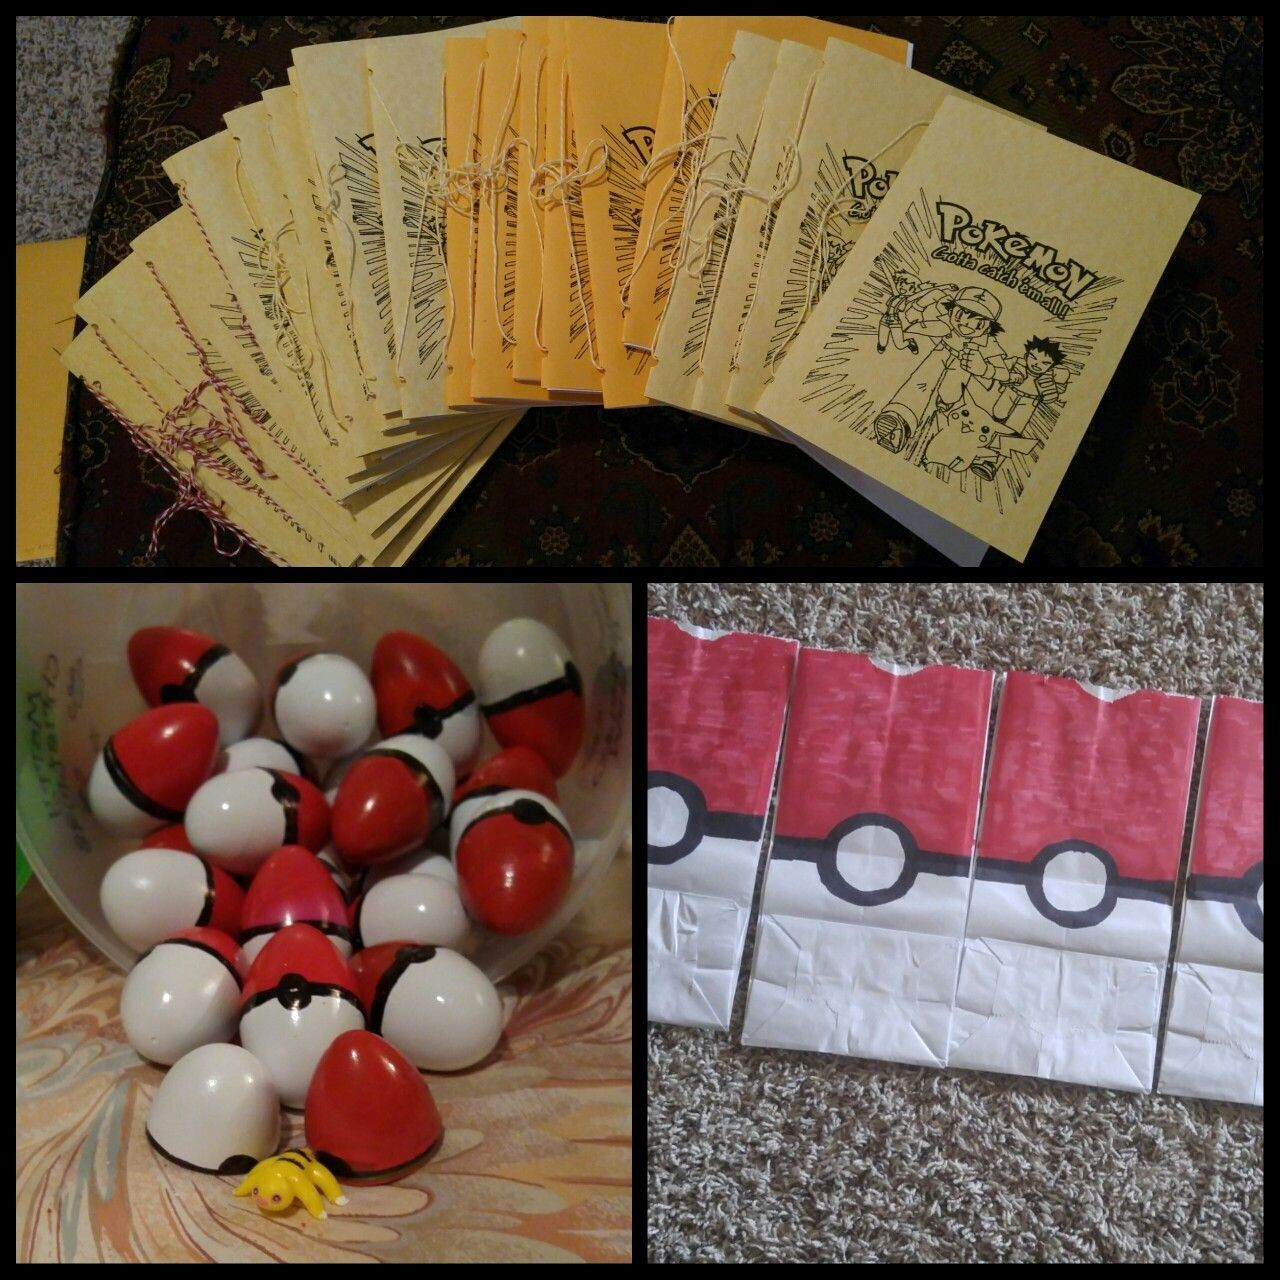 Coloring Book Party Favors Luxury Diy Pokemon Party Favors A Handmade Coloring Book And Pokemon Party Pokemon Party Favors Pokemon Party Decorations